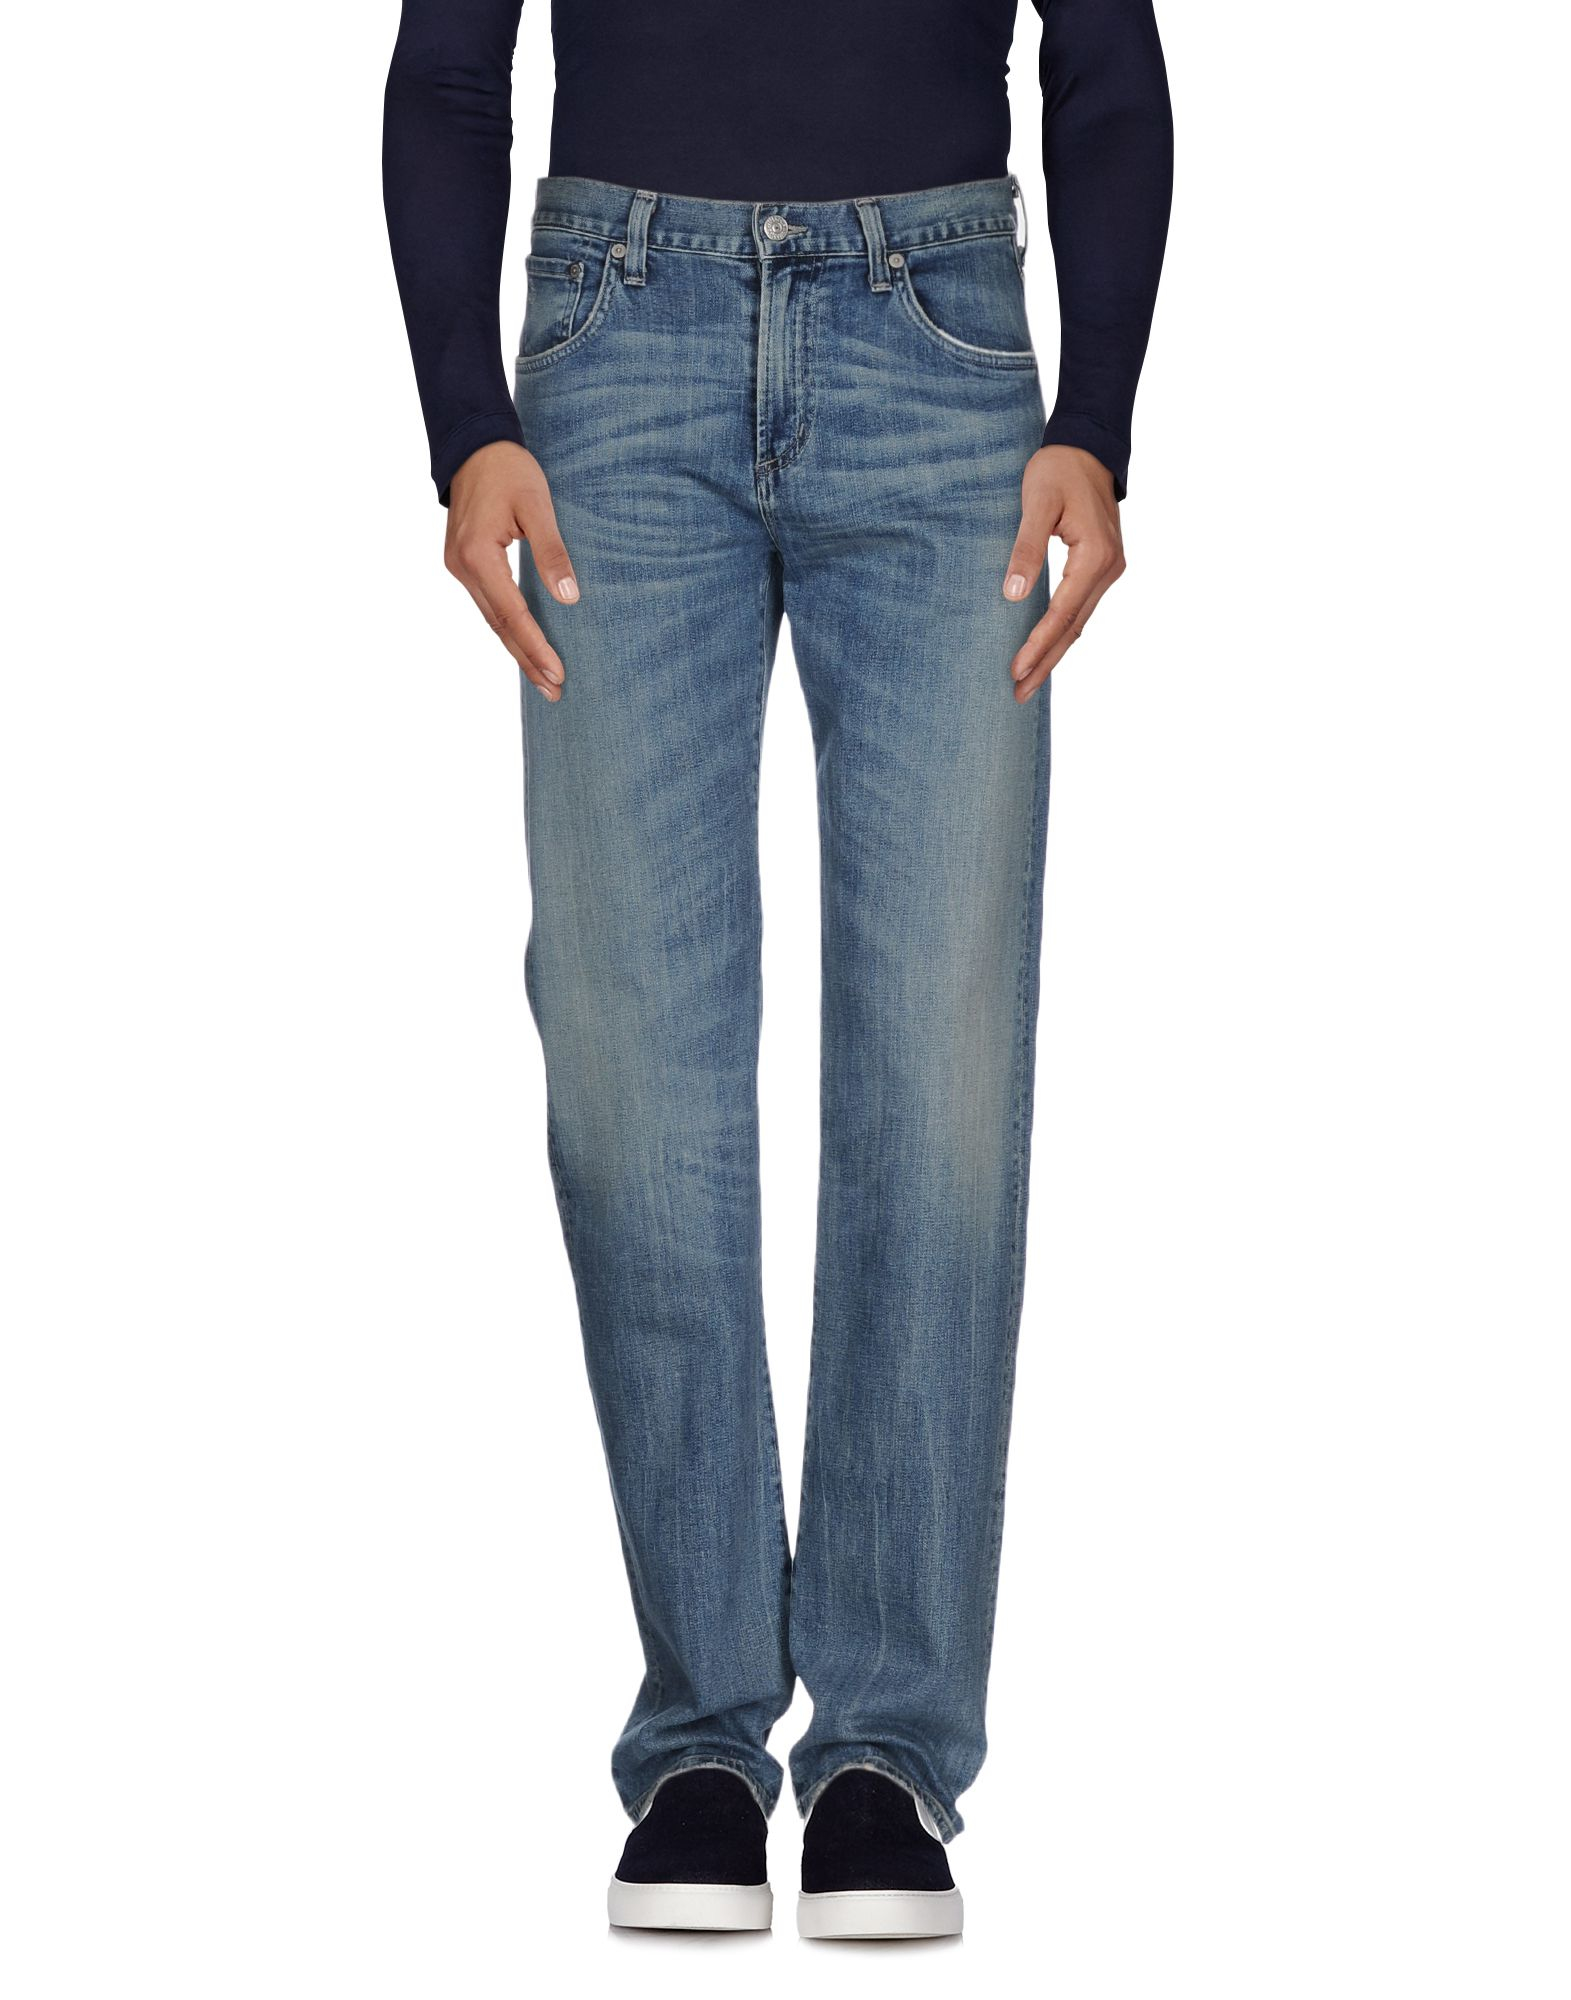 Citizens Of Humanity Denim Pants in Blue for Men